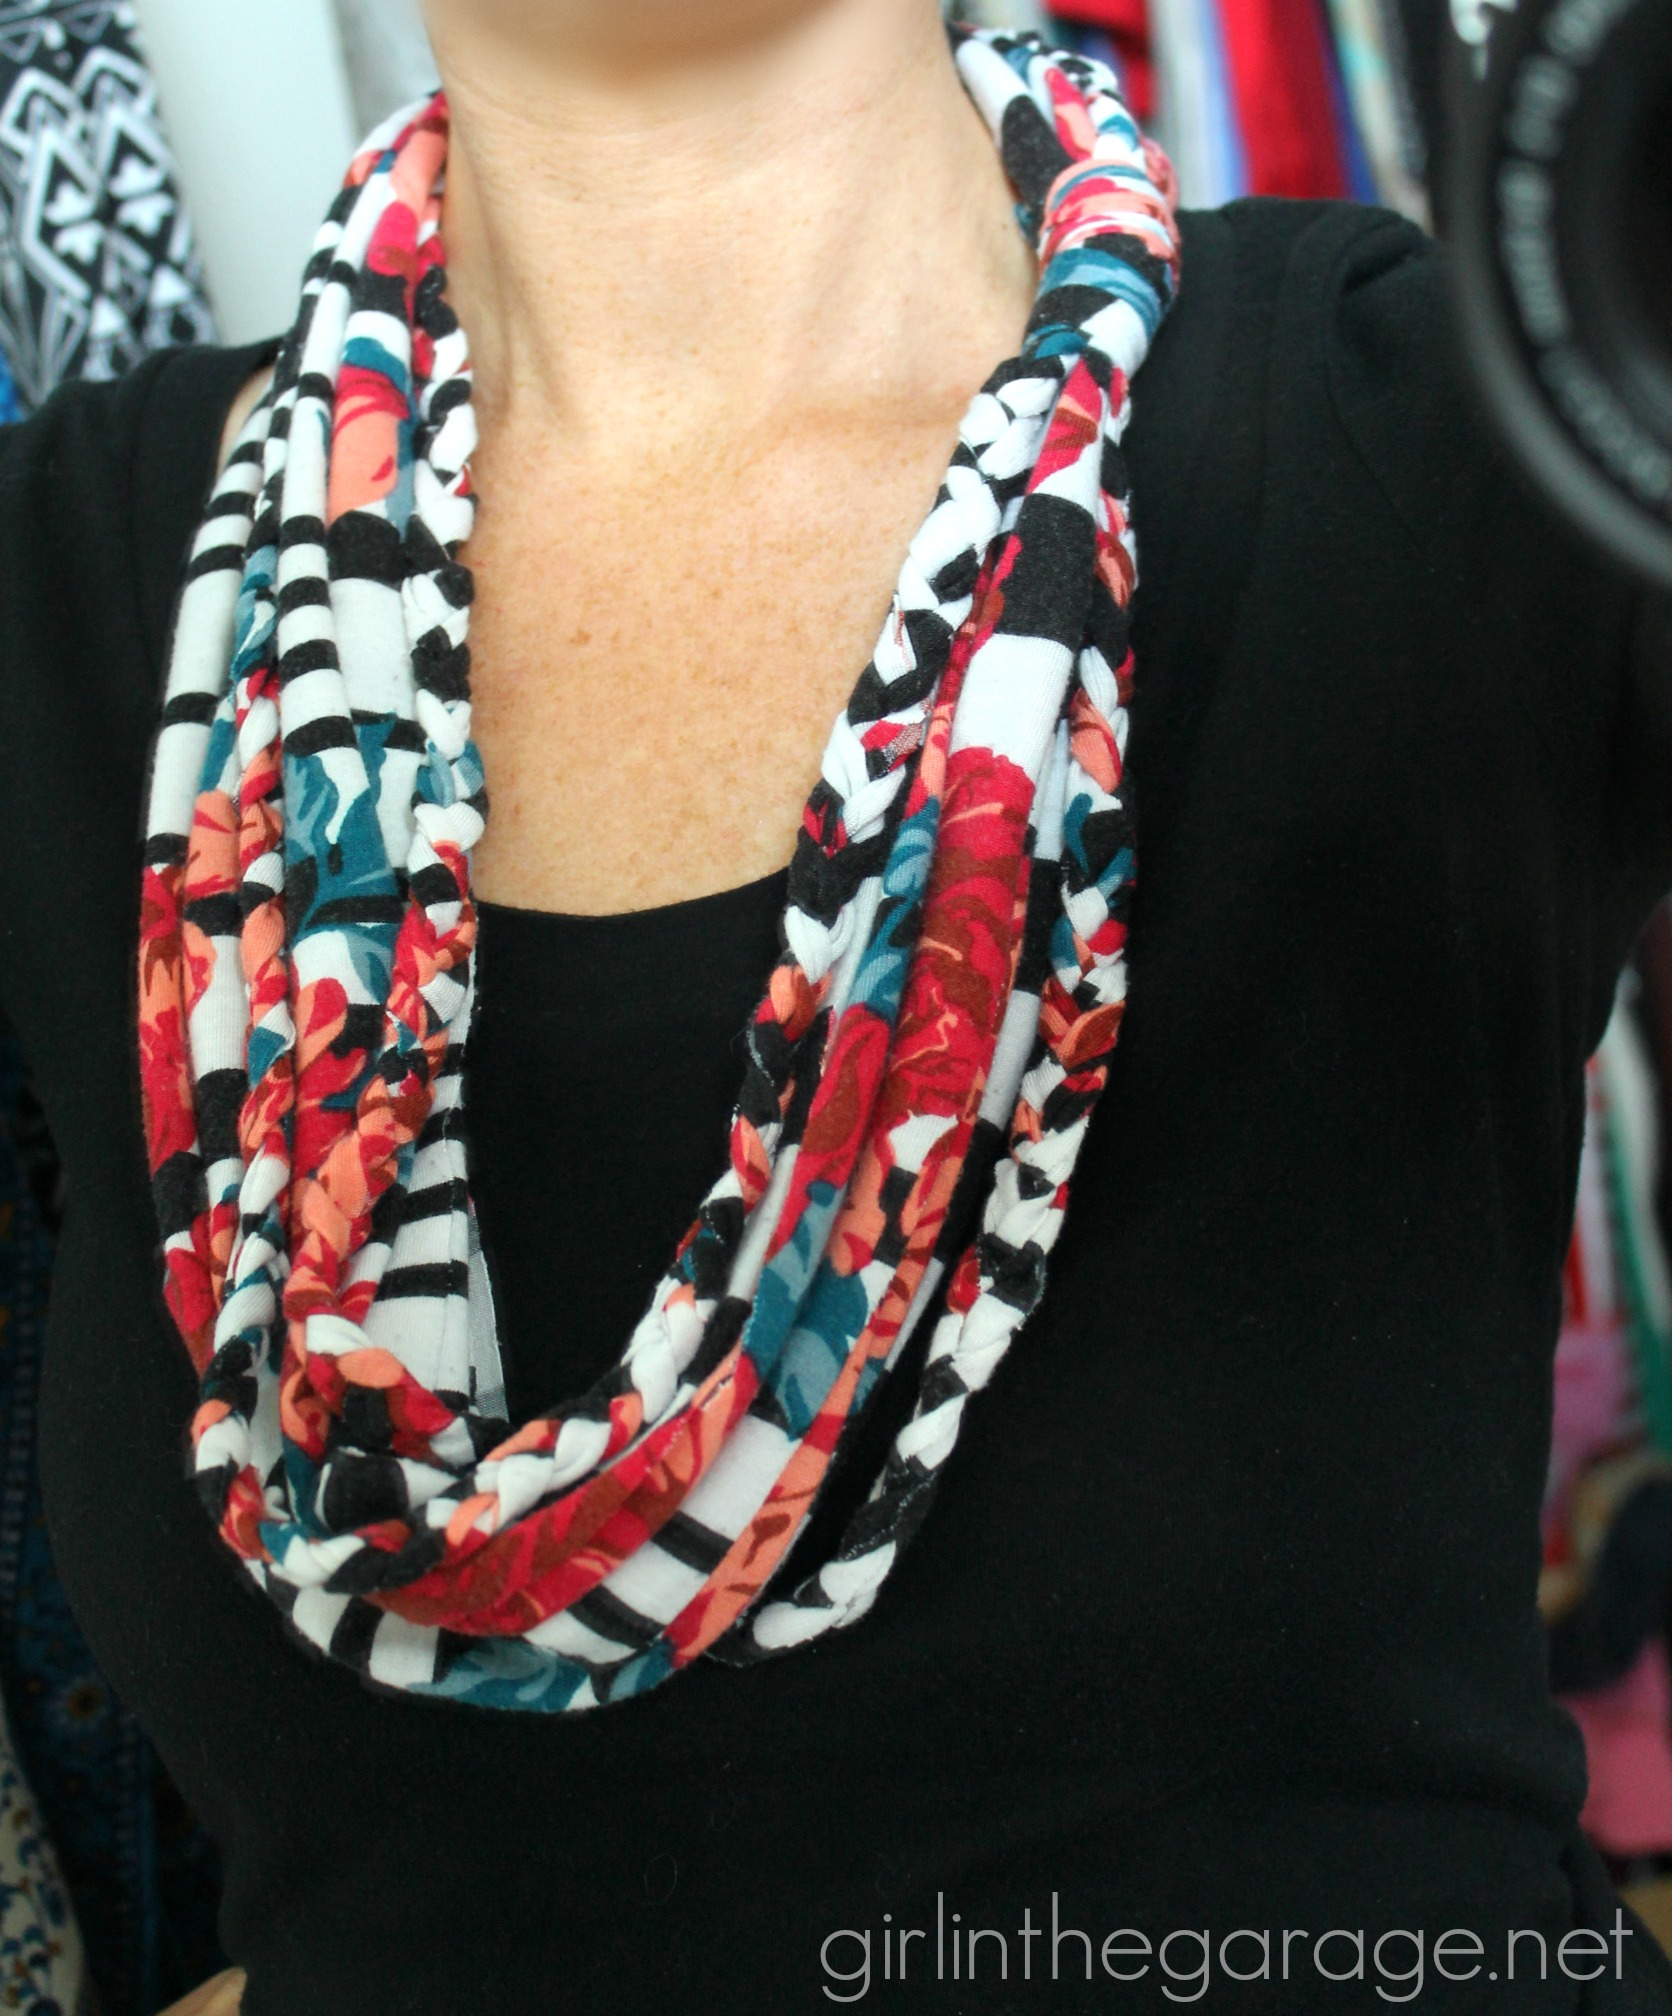 Repurposed maxi dress to DIY infinity scarf - Girl in the Garage